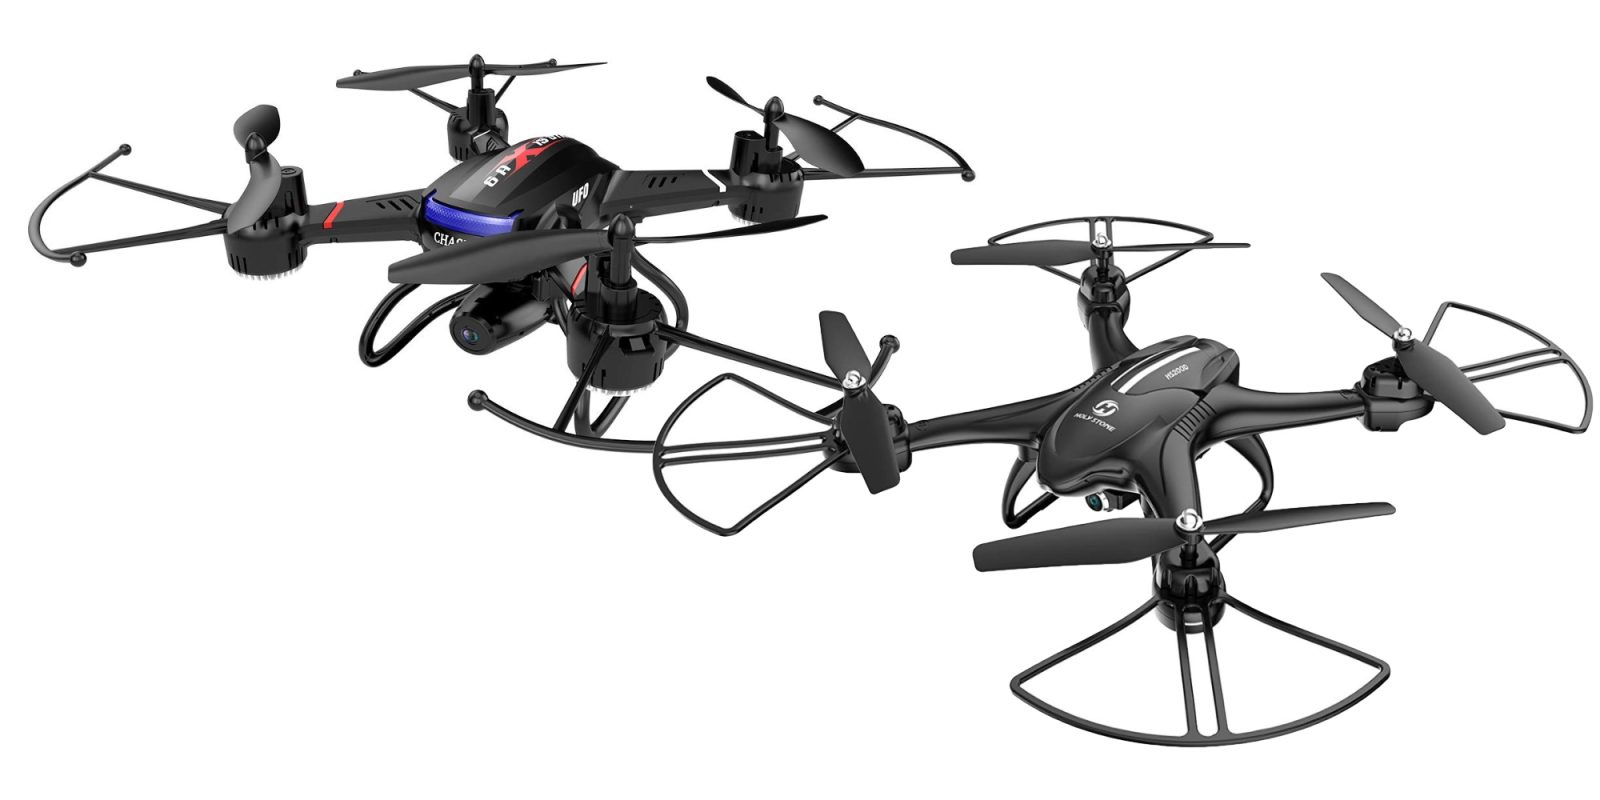 Drone deals take flight with 30% off quadcopters at Amazon from $70, more